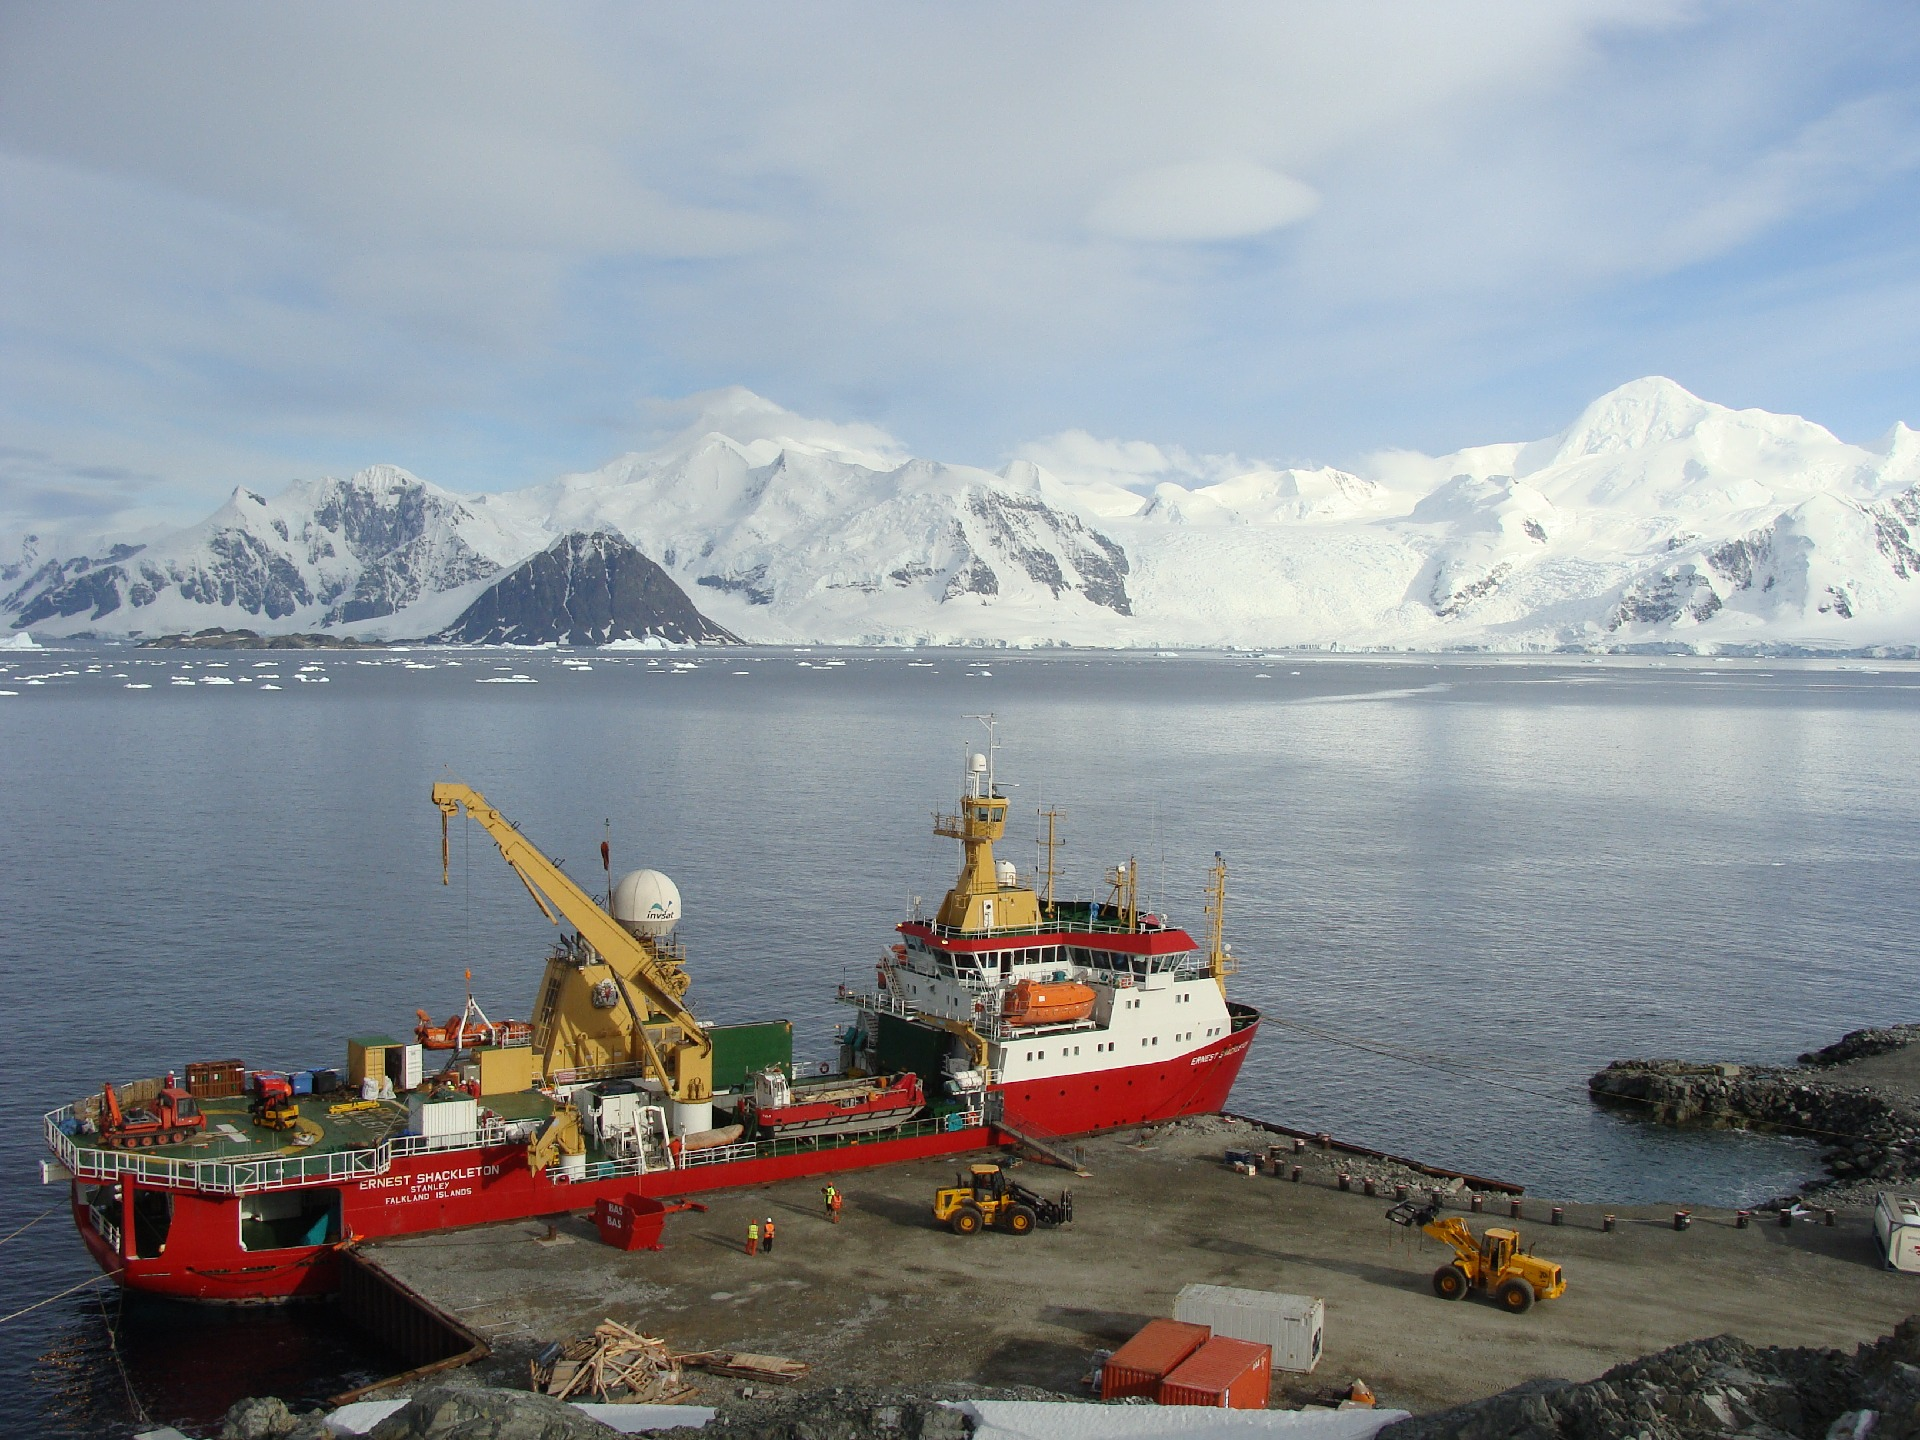 The RRS Ernest Shackleton moored at the wharf of Rothera Research Station